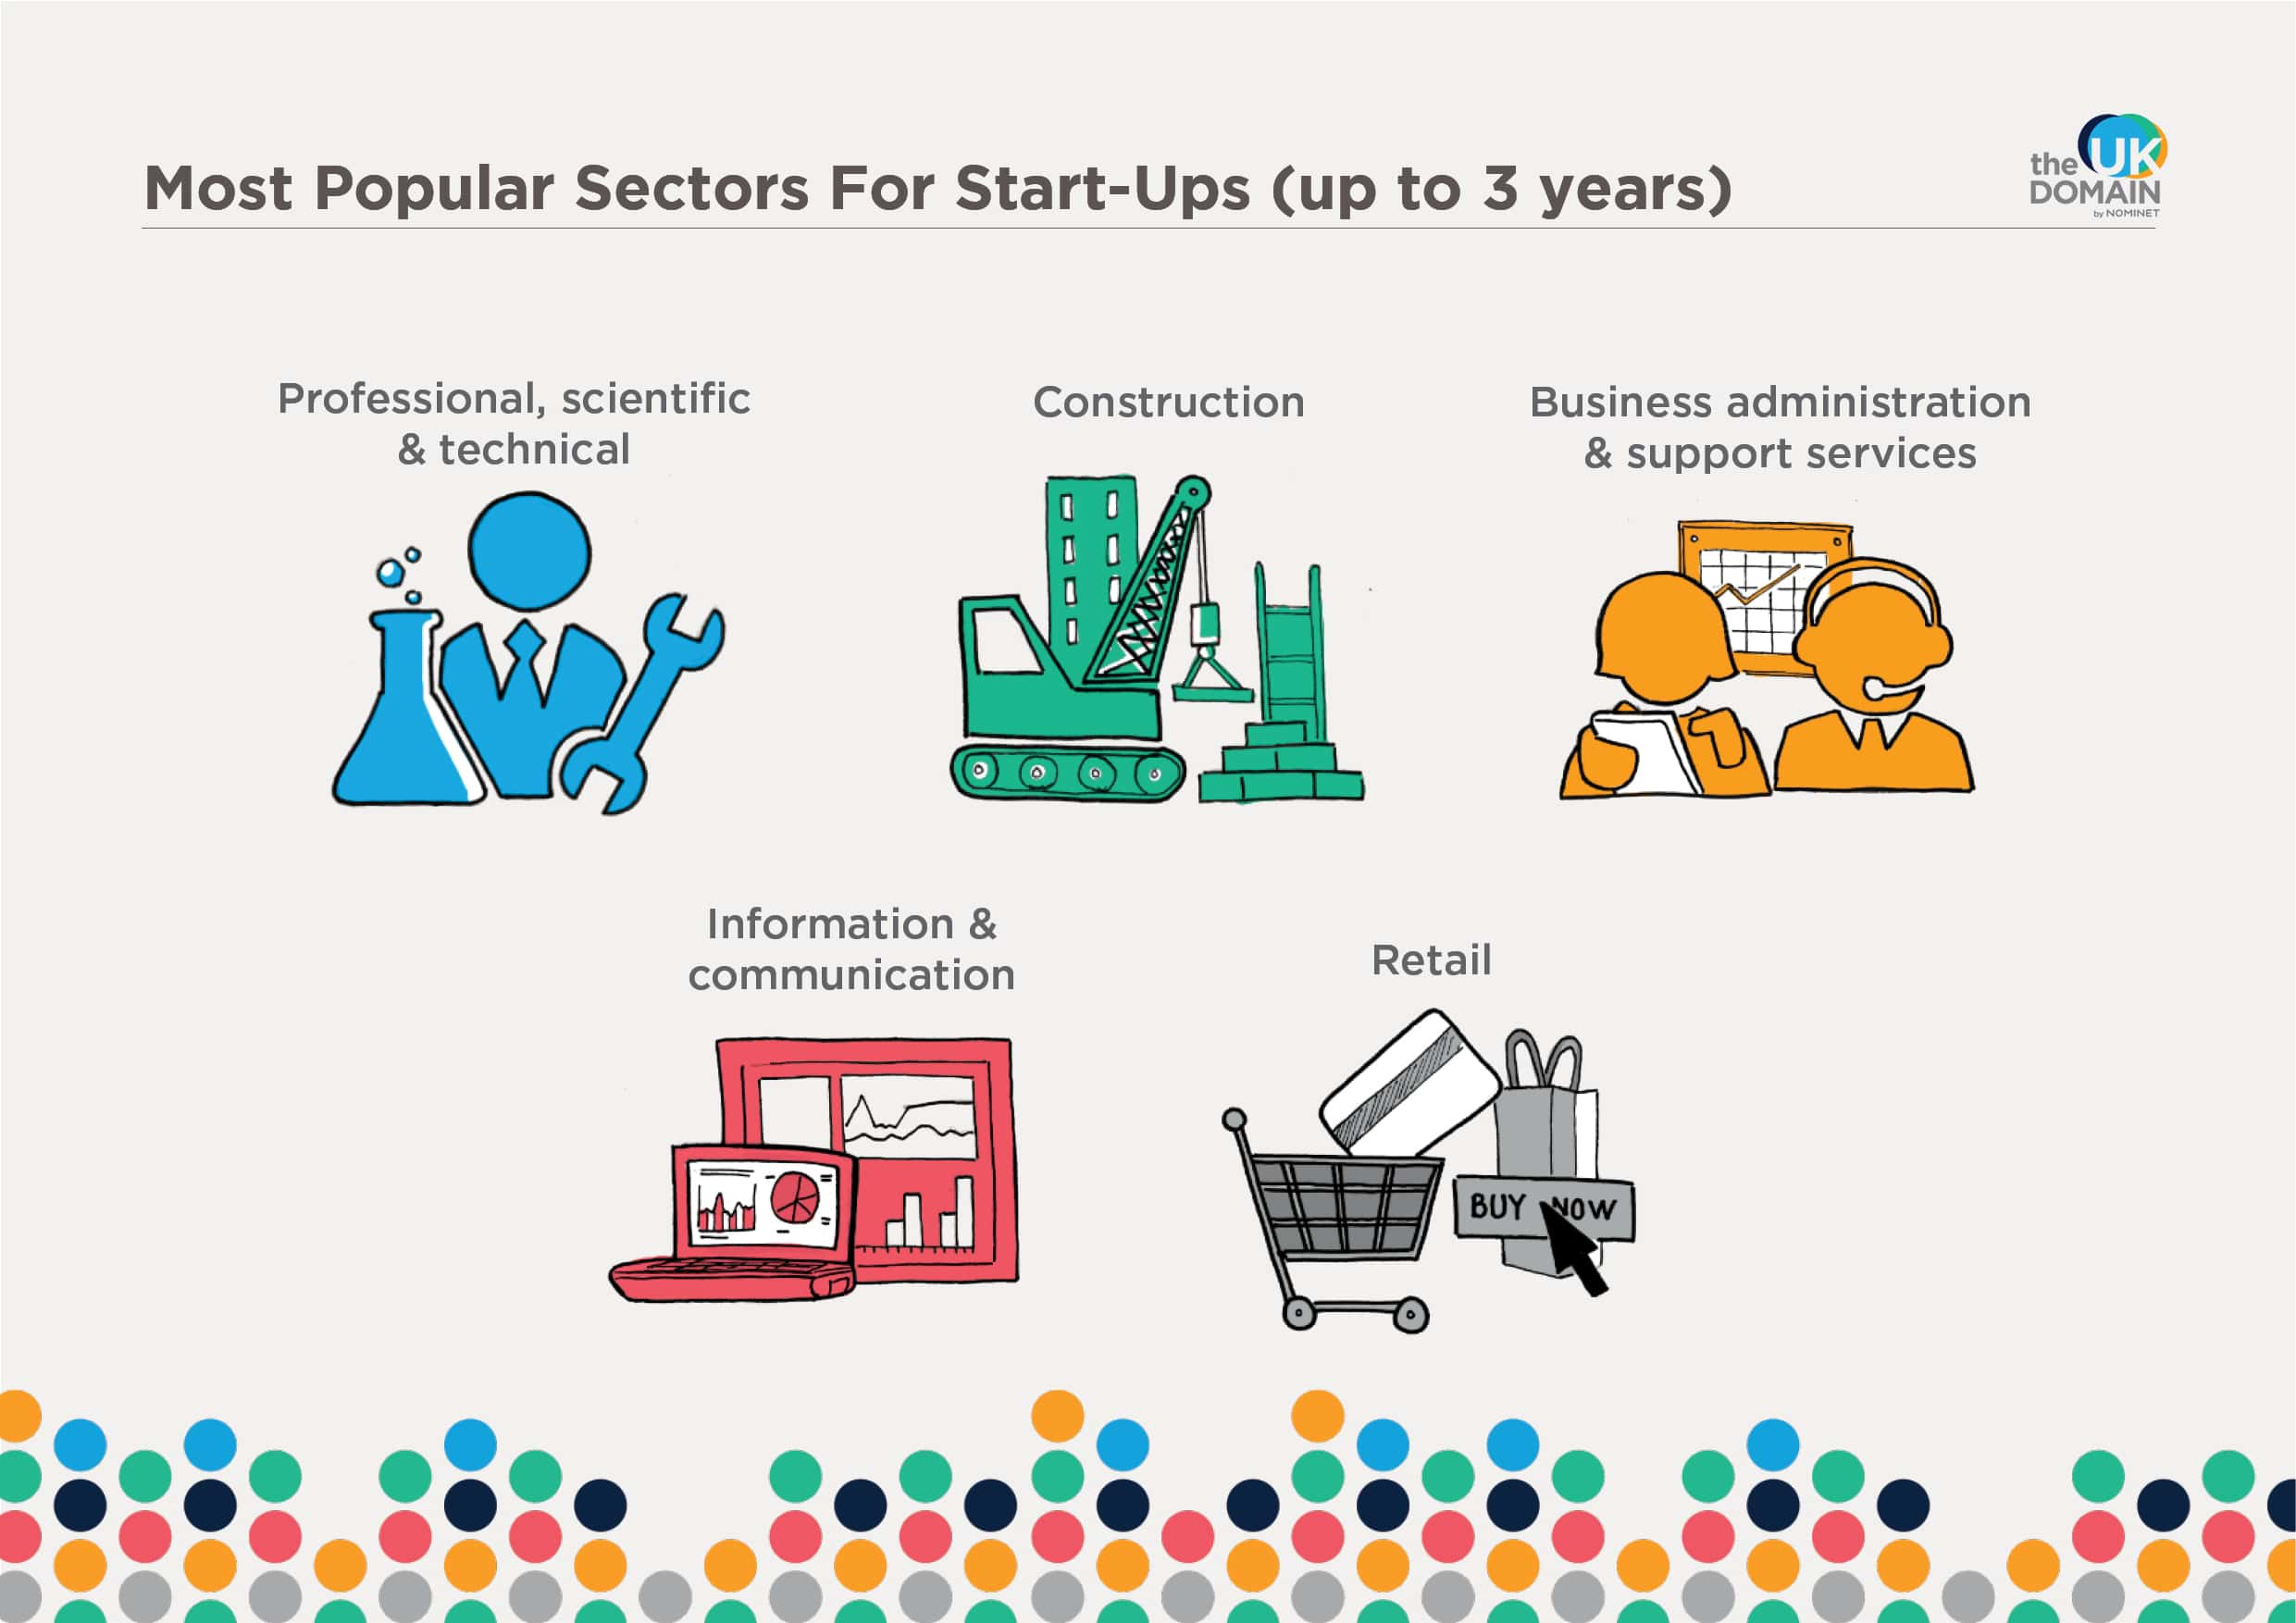 Most popular sectors for start-ups